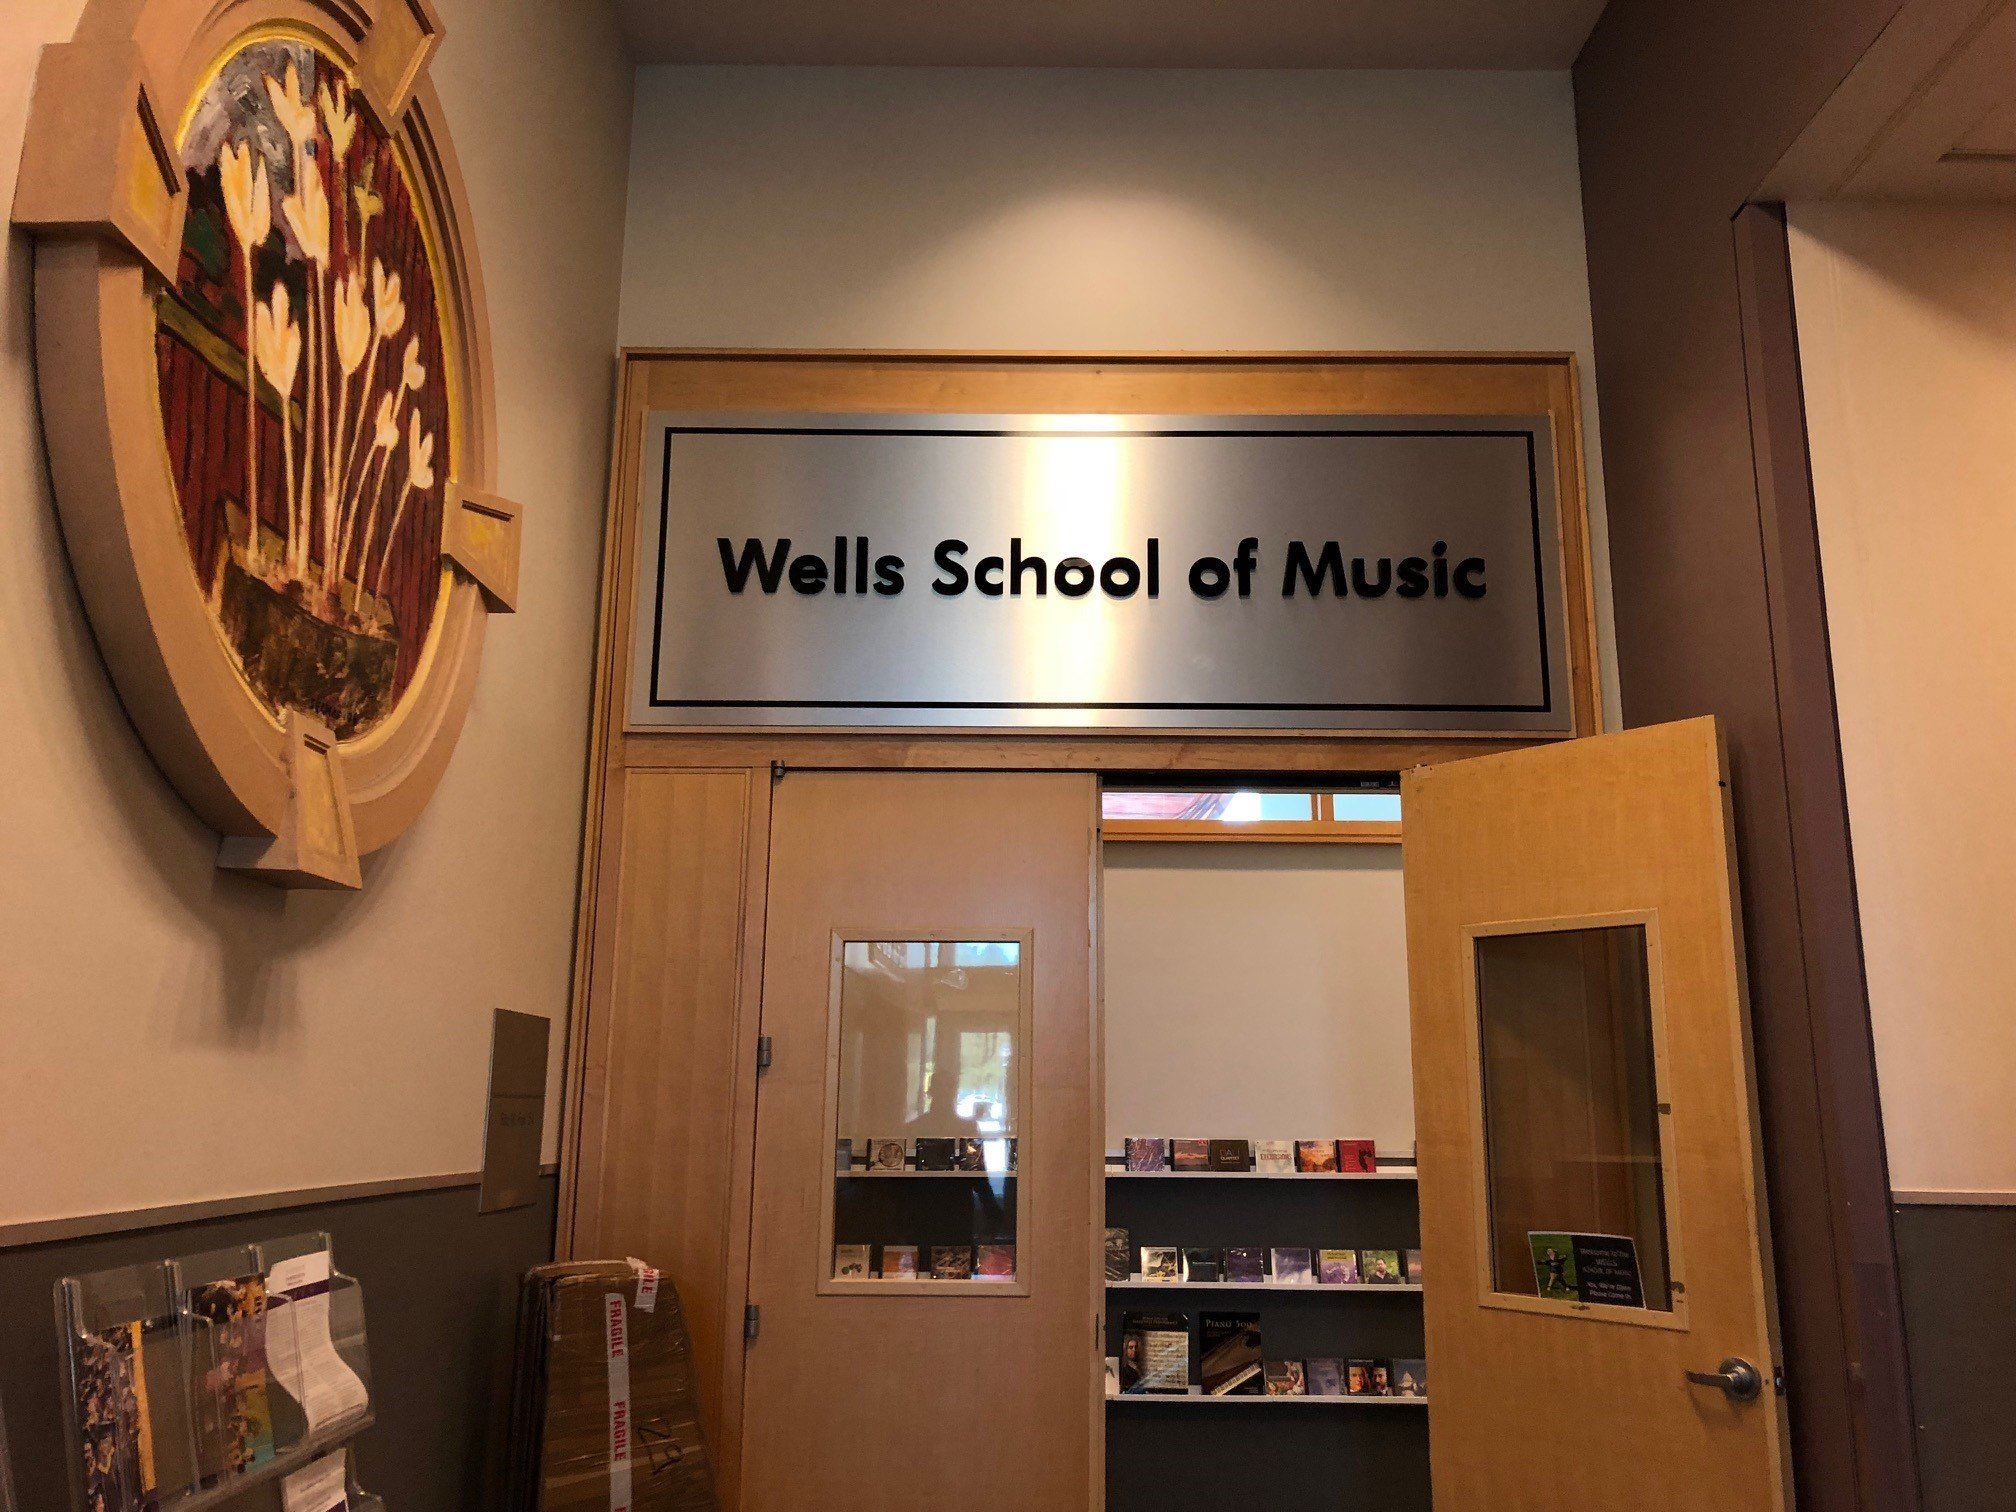 WCU Sign Wells School of Music